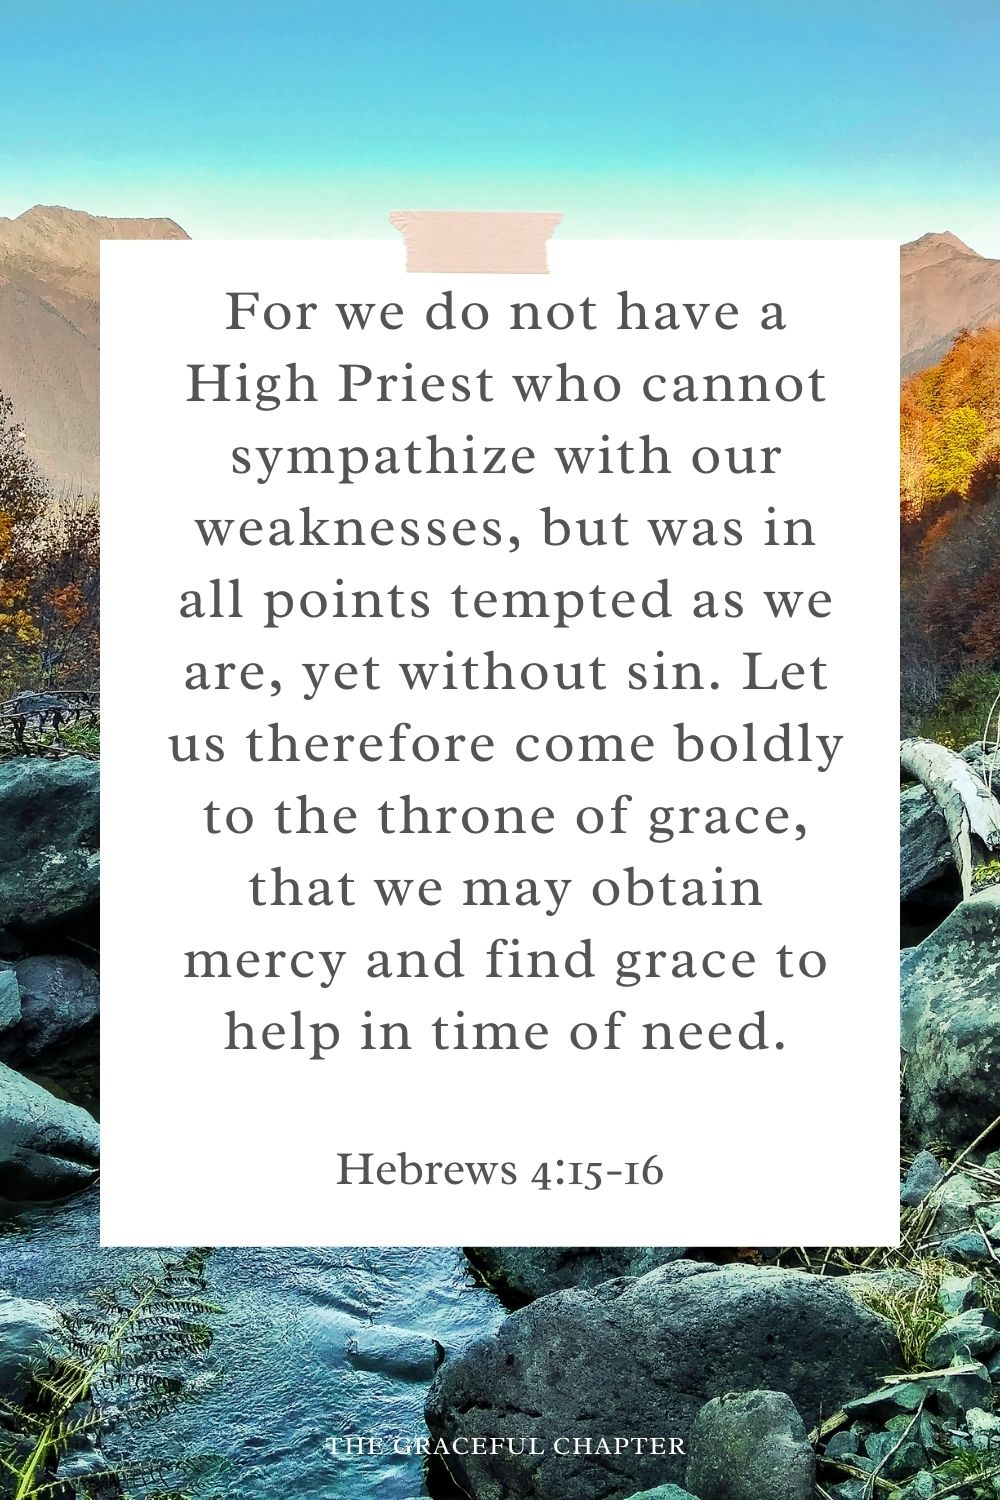 For we do not have a High Priest who cannot sympathize with our weaknesses, but was in all points tempted as we are, yet without sin. Let us therefore come boldly to the throne of grace, that we may obtain mercy and find grace to help in time of need. Hebrews 4:15-16